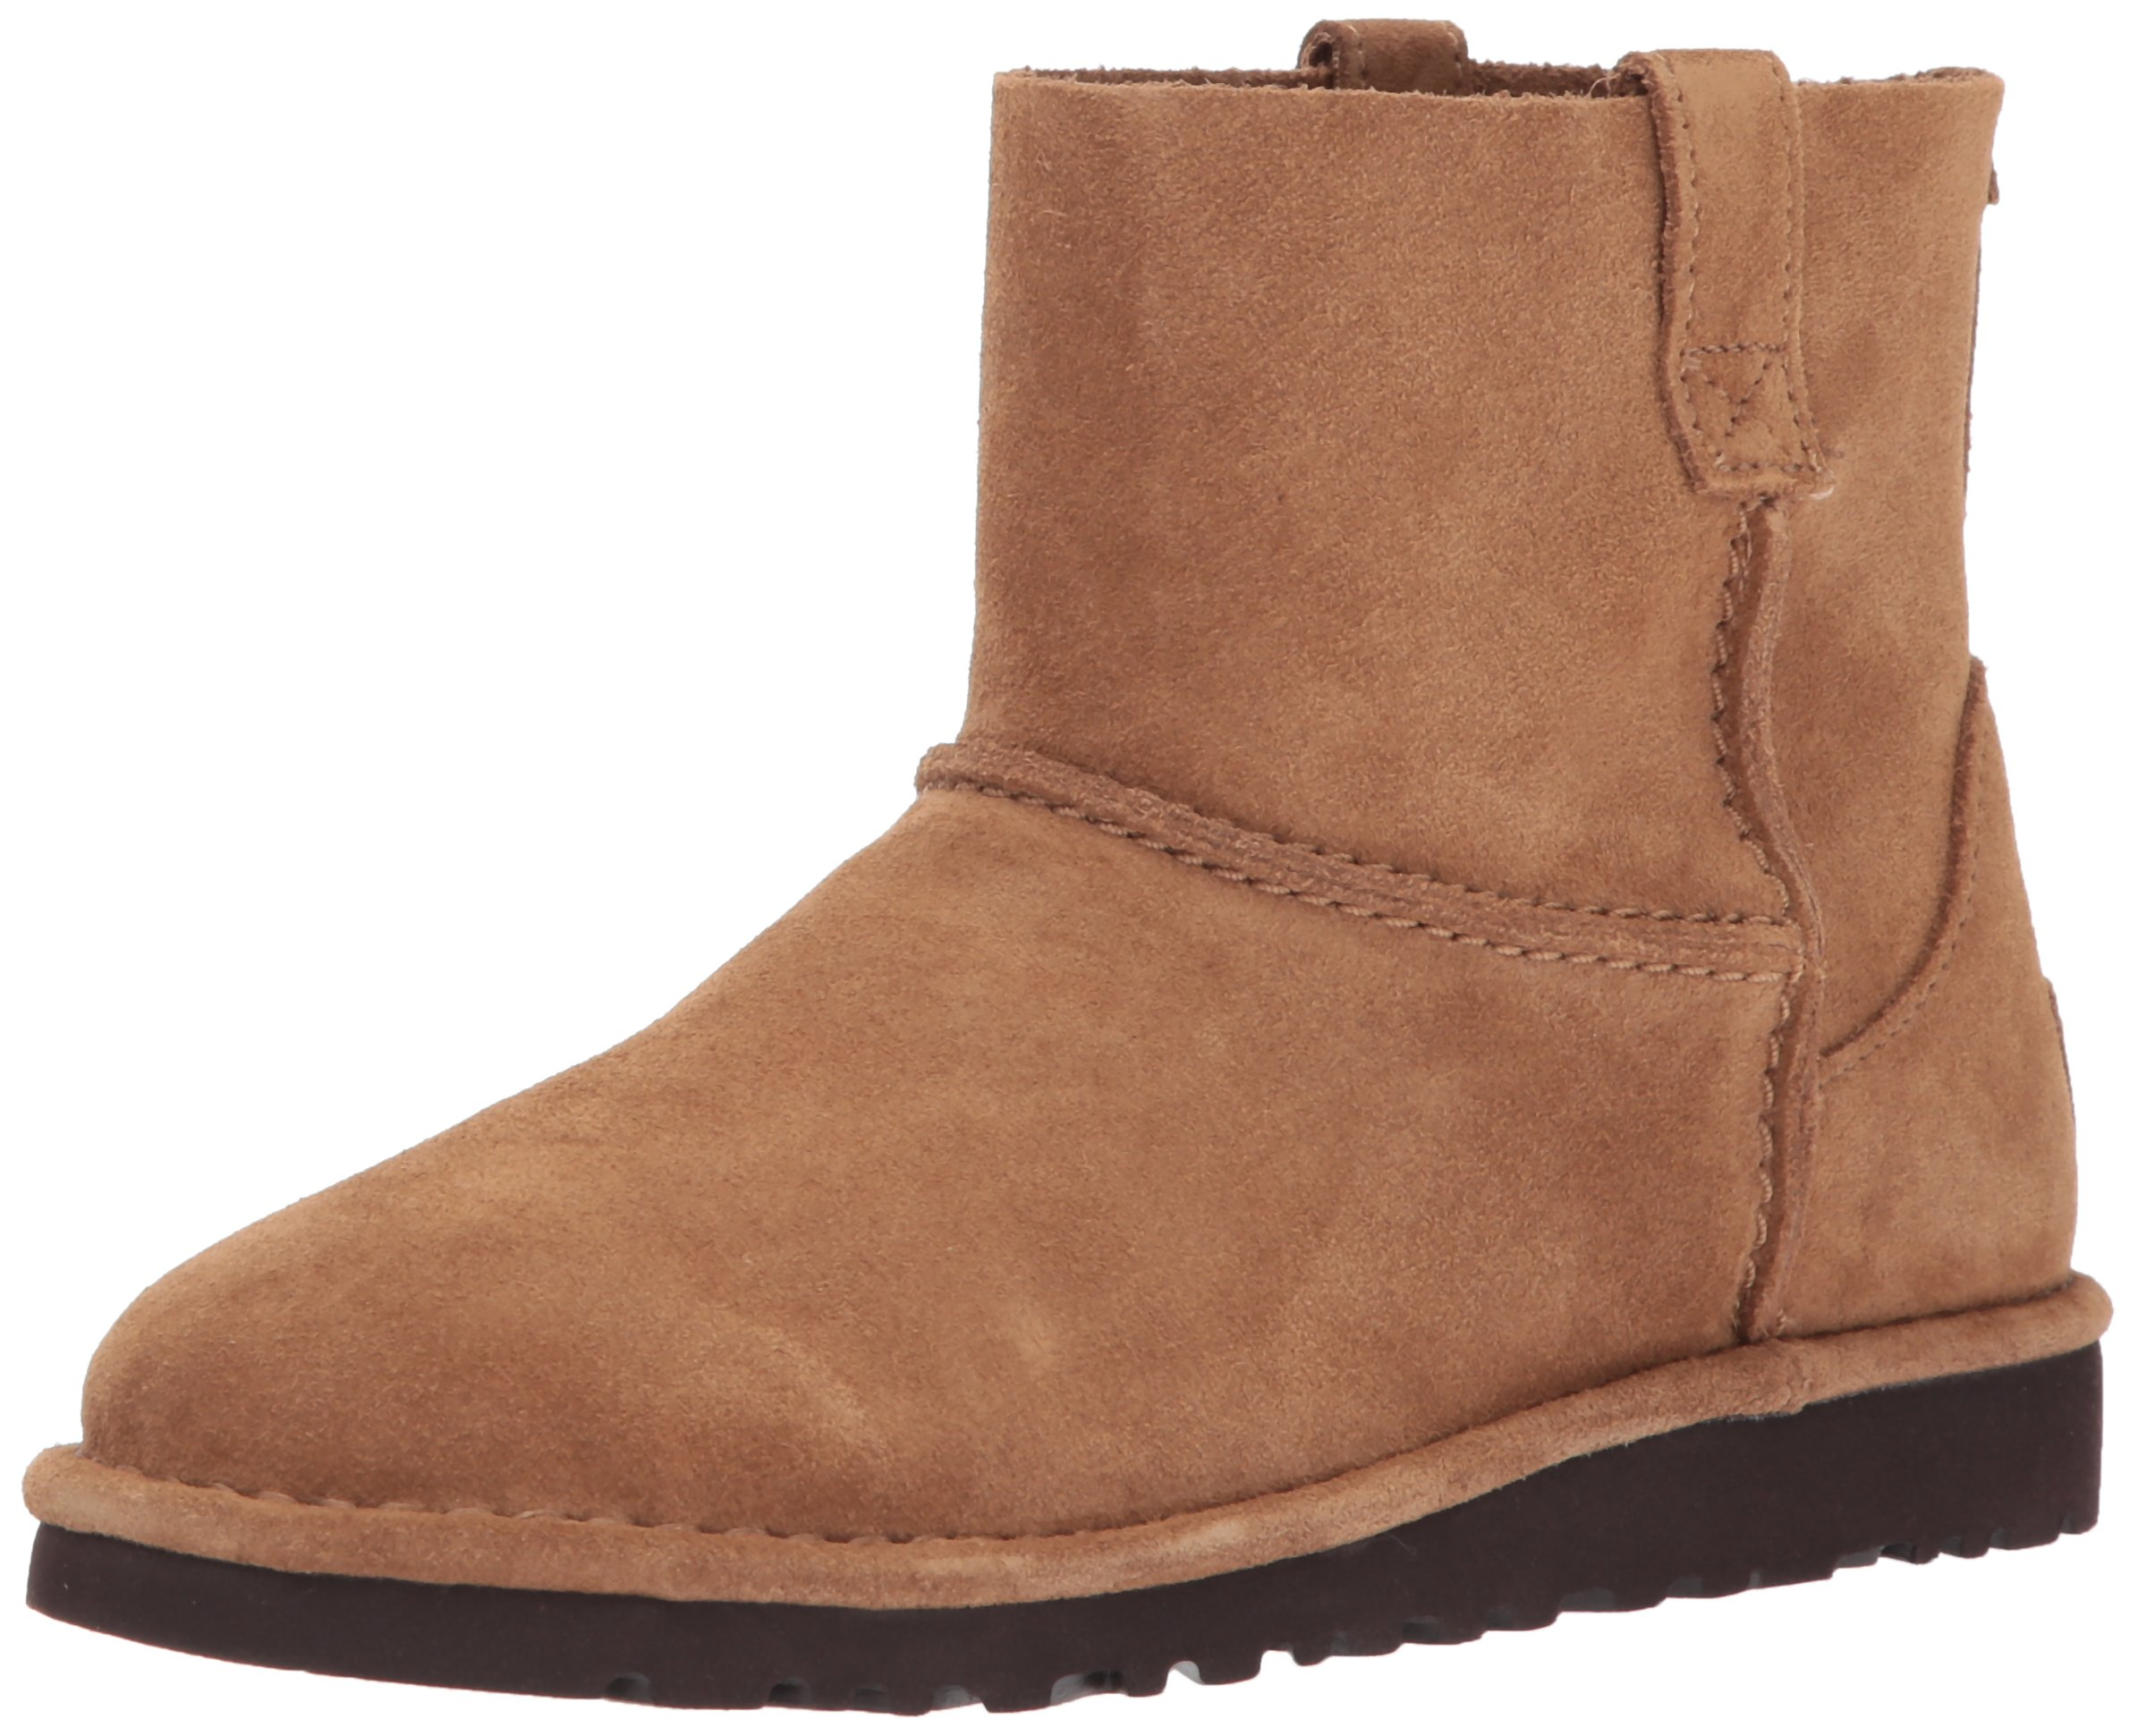 UGG Women's Classic Unlined Mini Slouch Boot, Chestnut, 8 M US by UGG (Image #1)